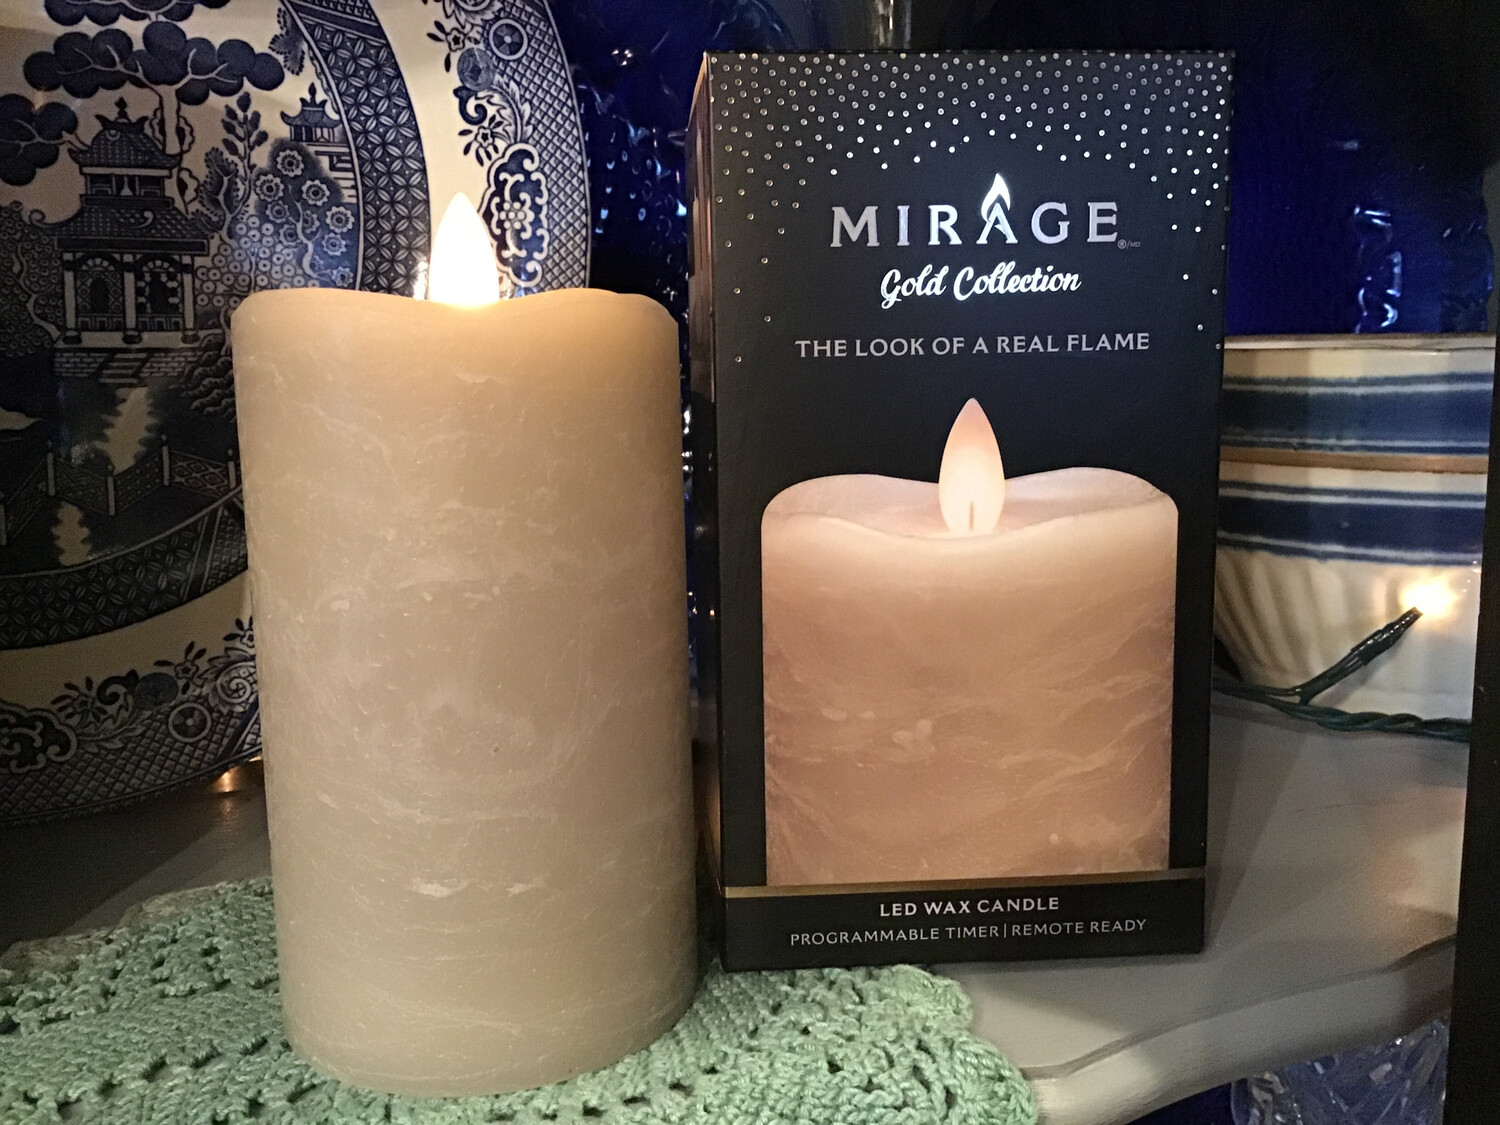 Mirage Pillar Candle 3in x 5in/Warm Sand Color